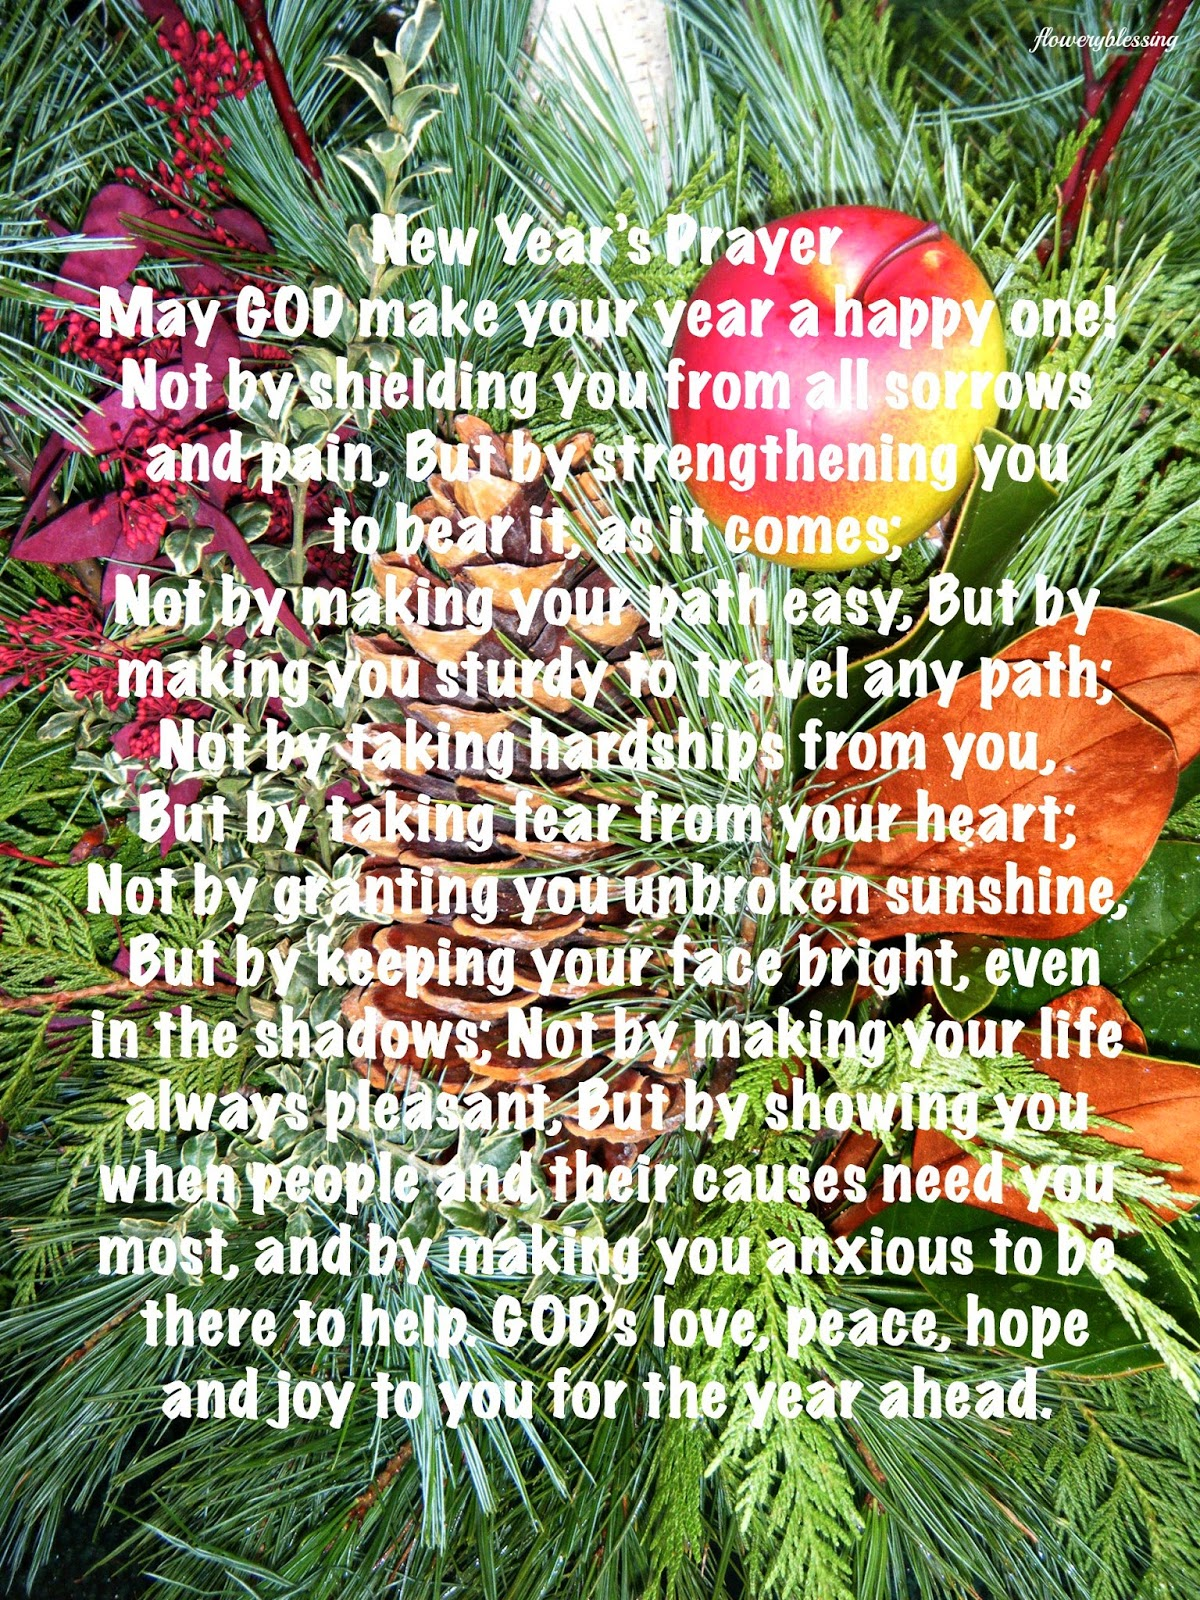 Flowery Blessing: - New Year\'s Prayer - May GOD make your year a ...